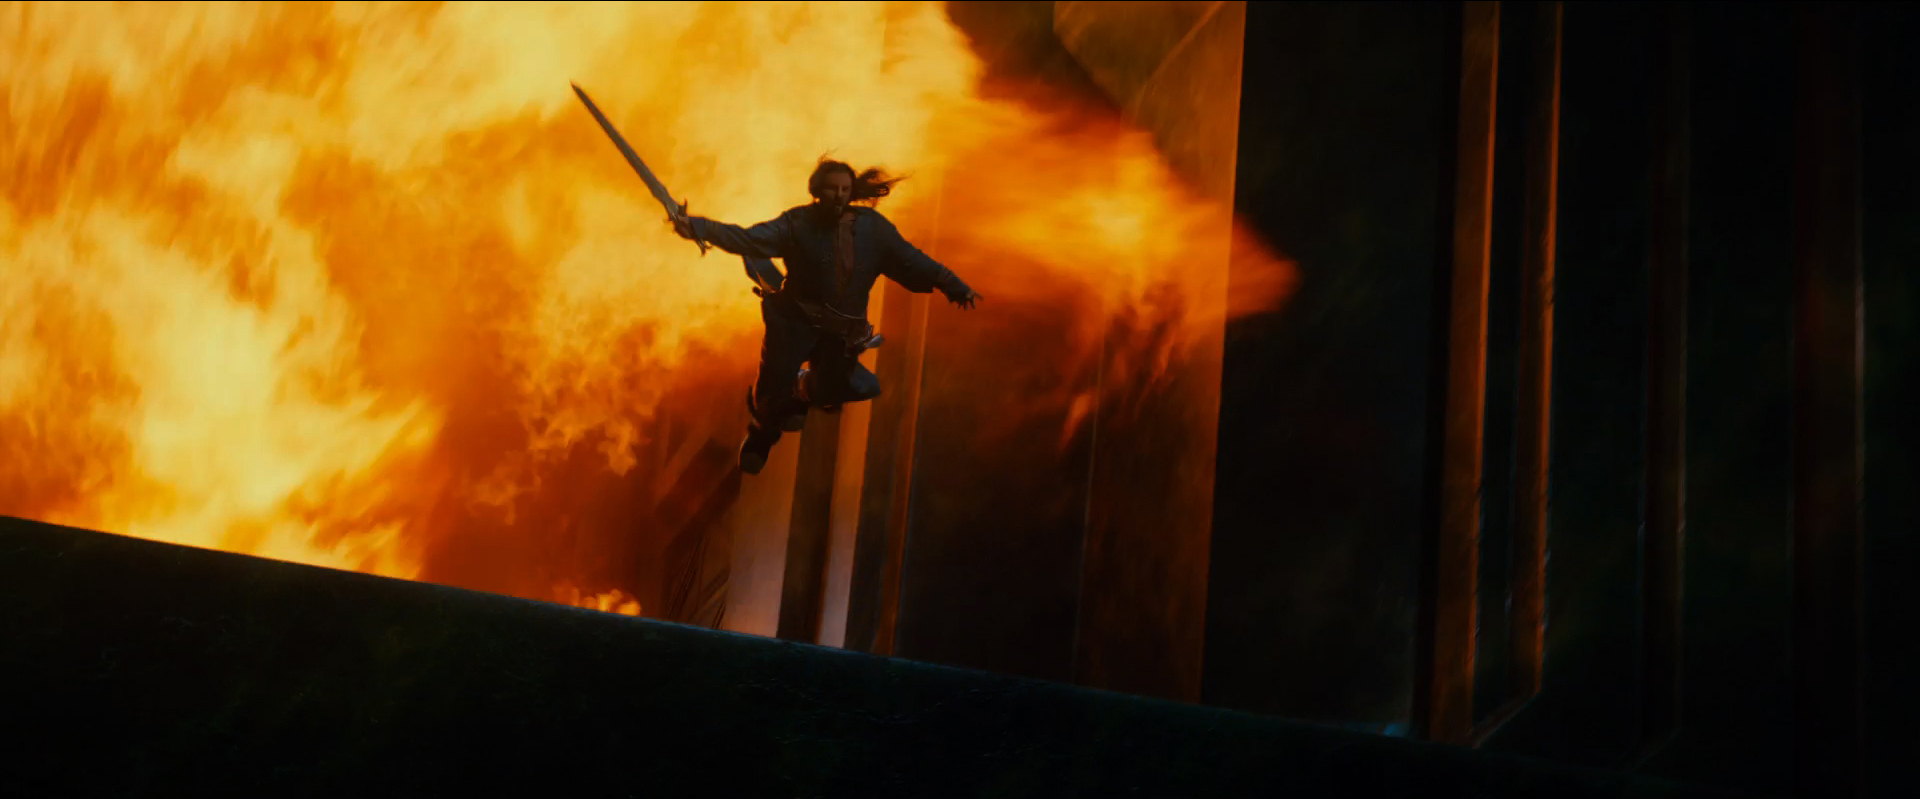 Watch TV Spot #6 for The Hobbit: The Desolation of Smaug | Hobbit Movie News and Rumors | TheOneRing.net™